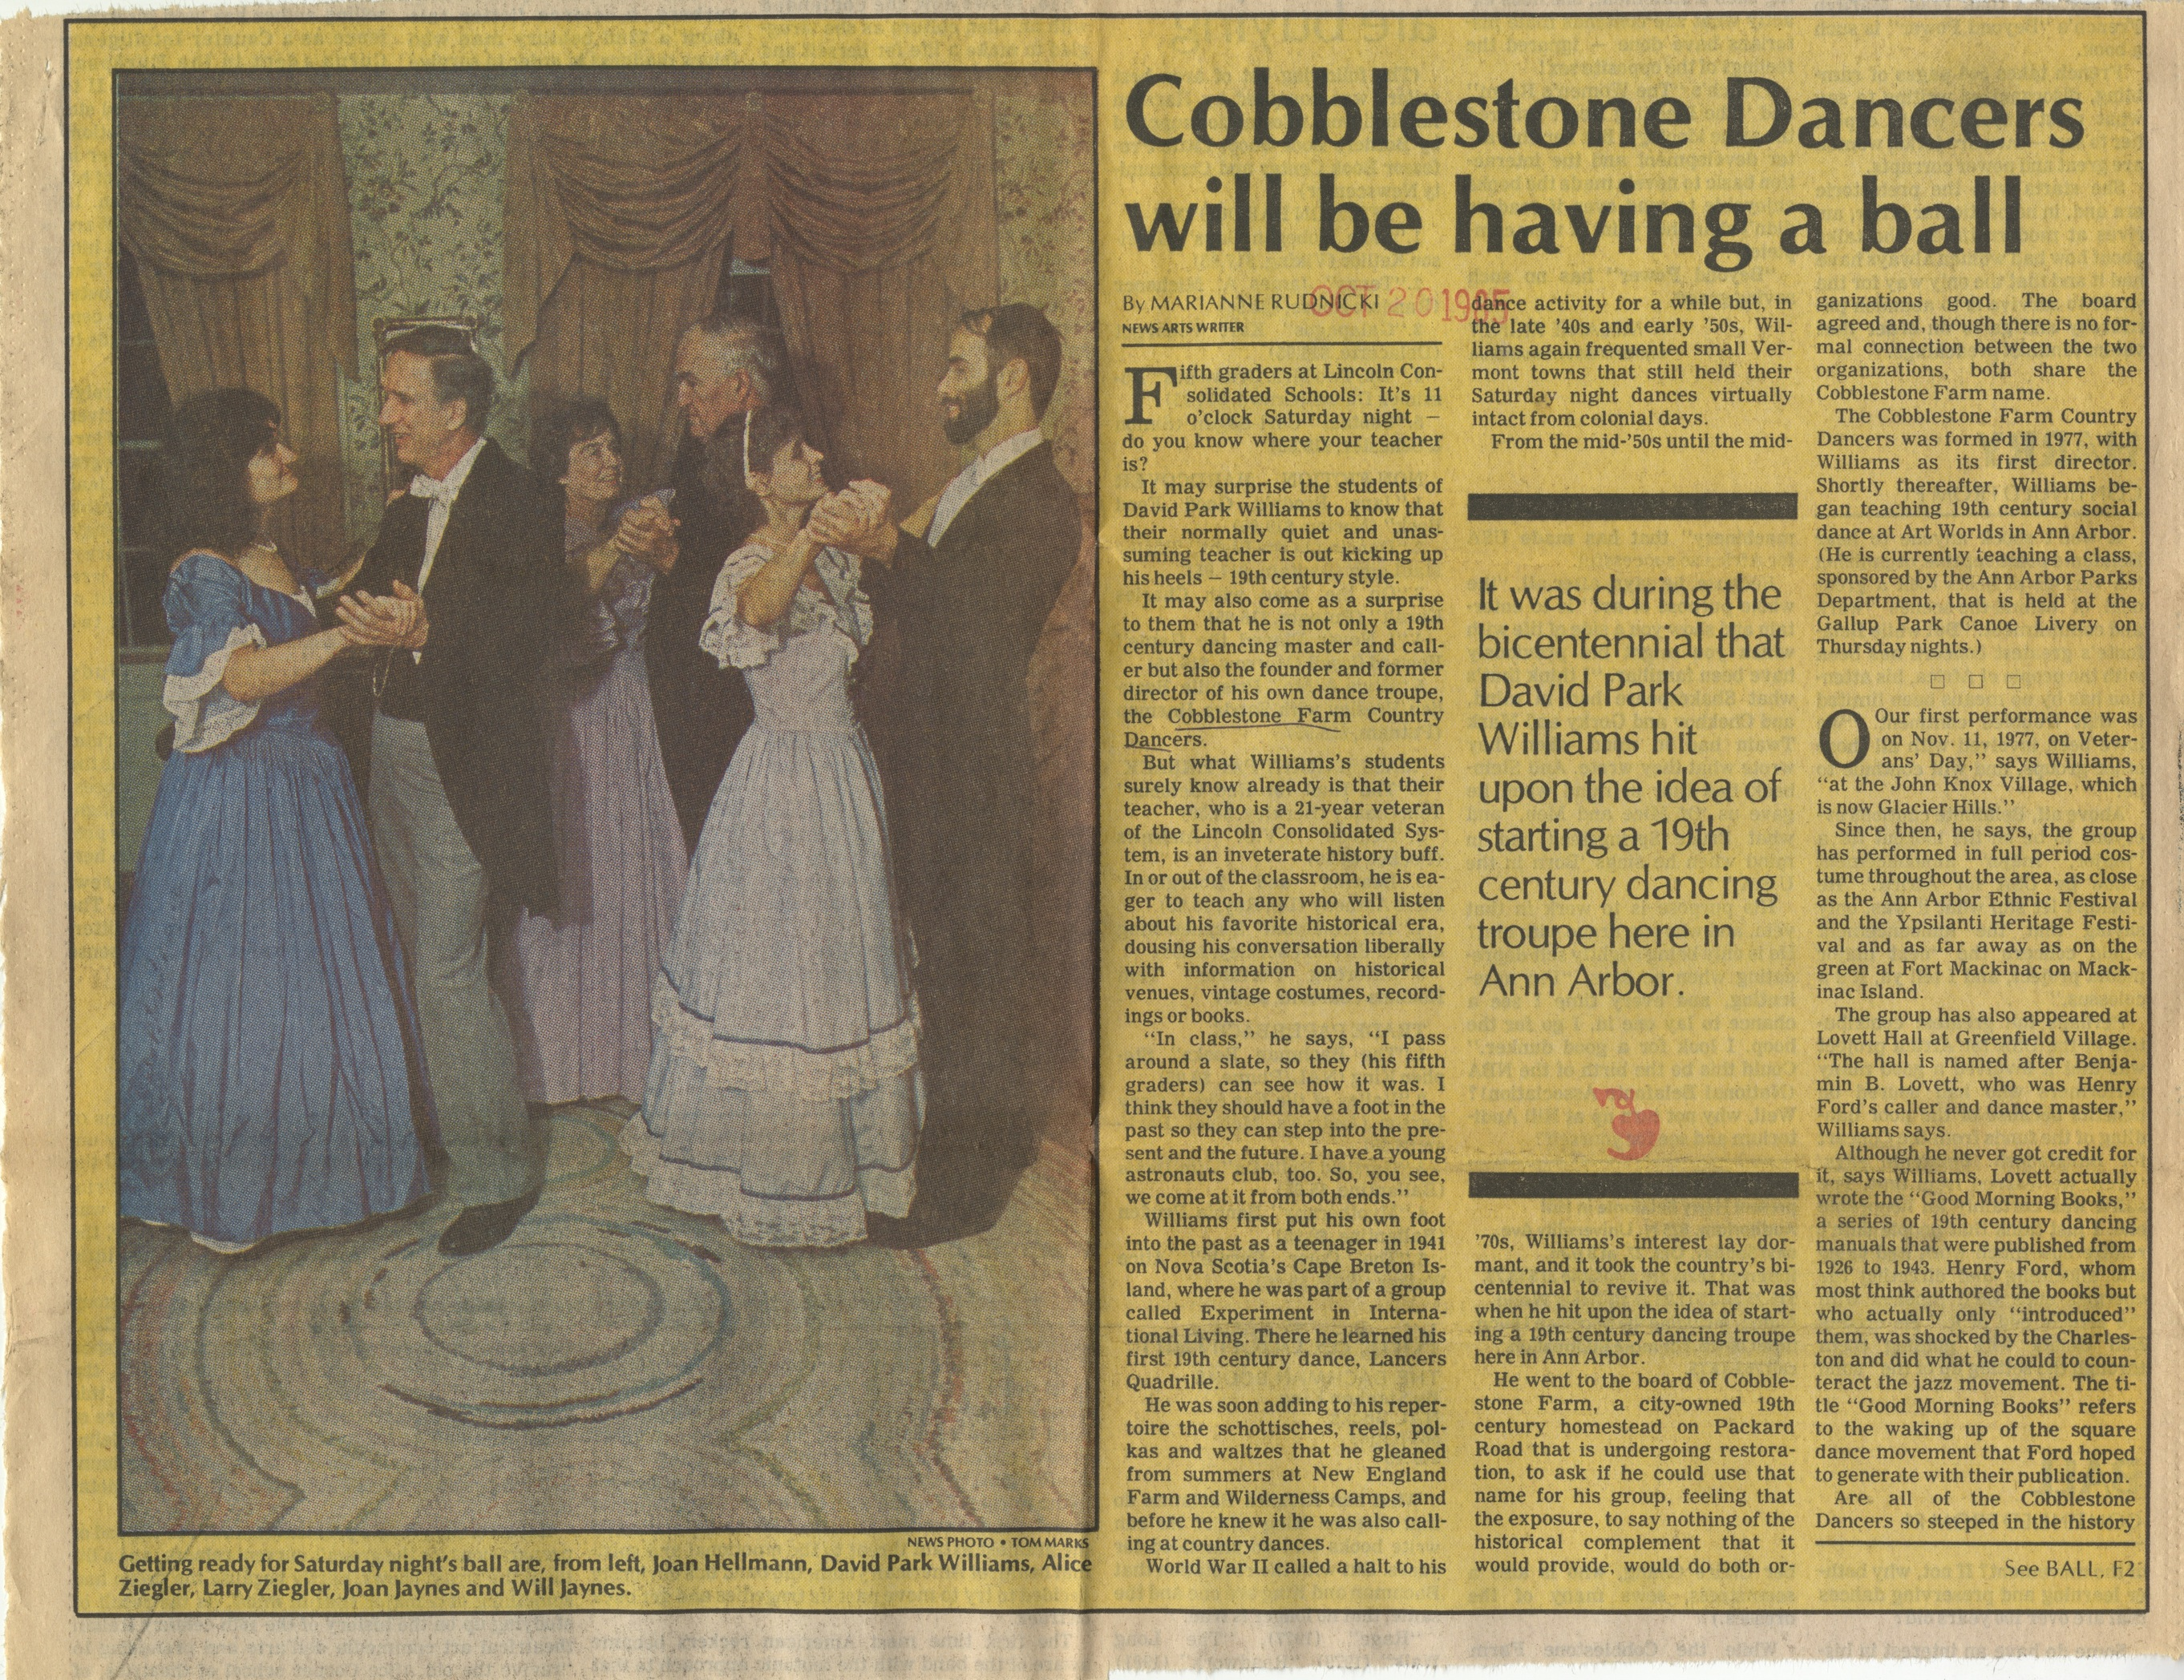 Cobblestone Dancers Will Have A Ball image